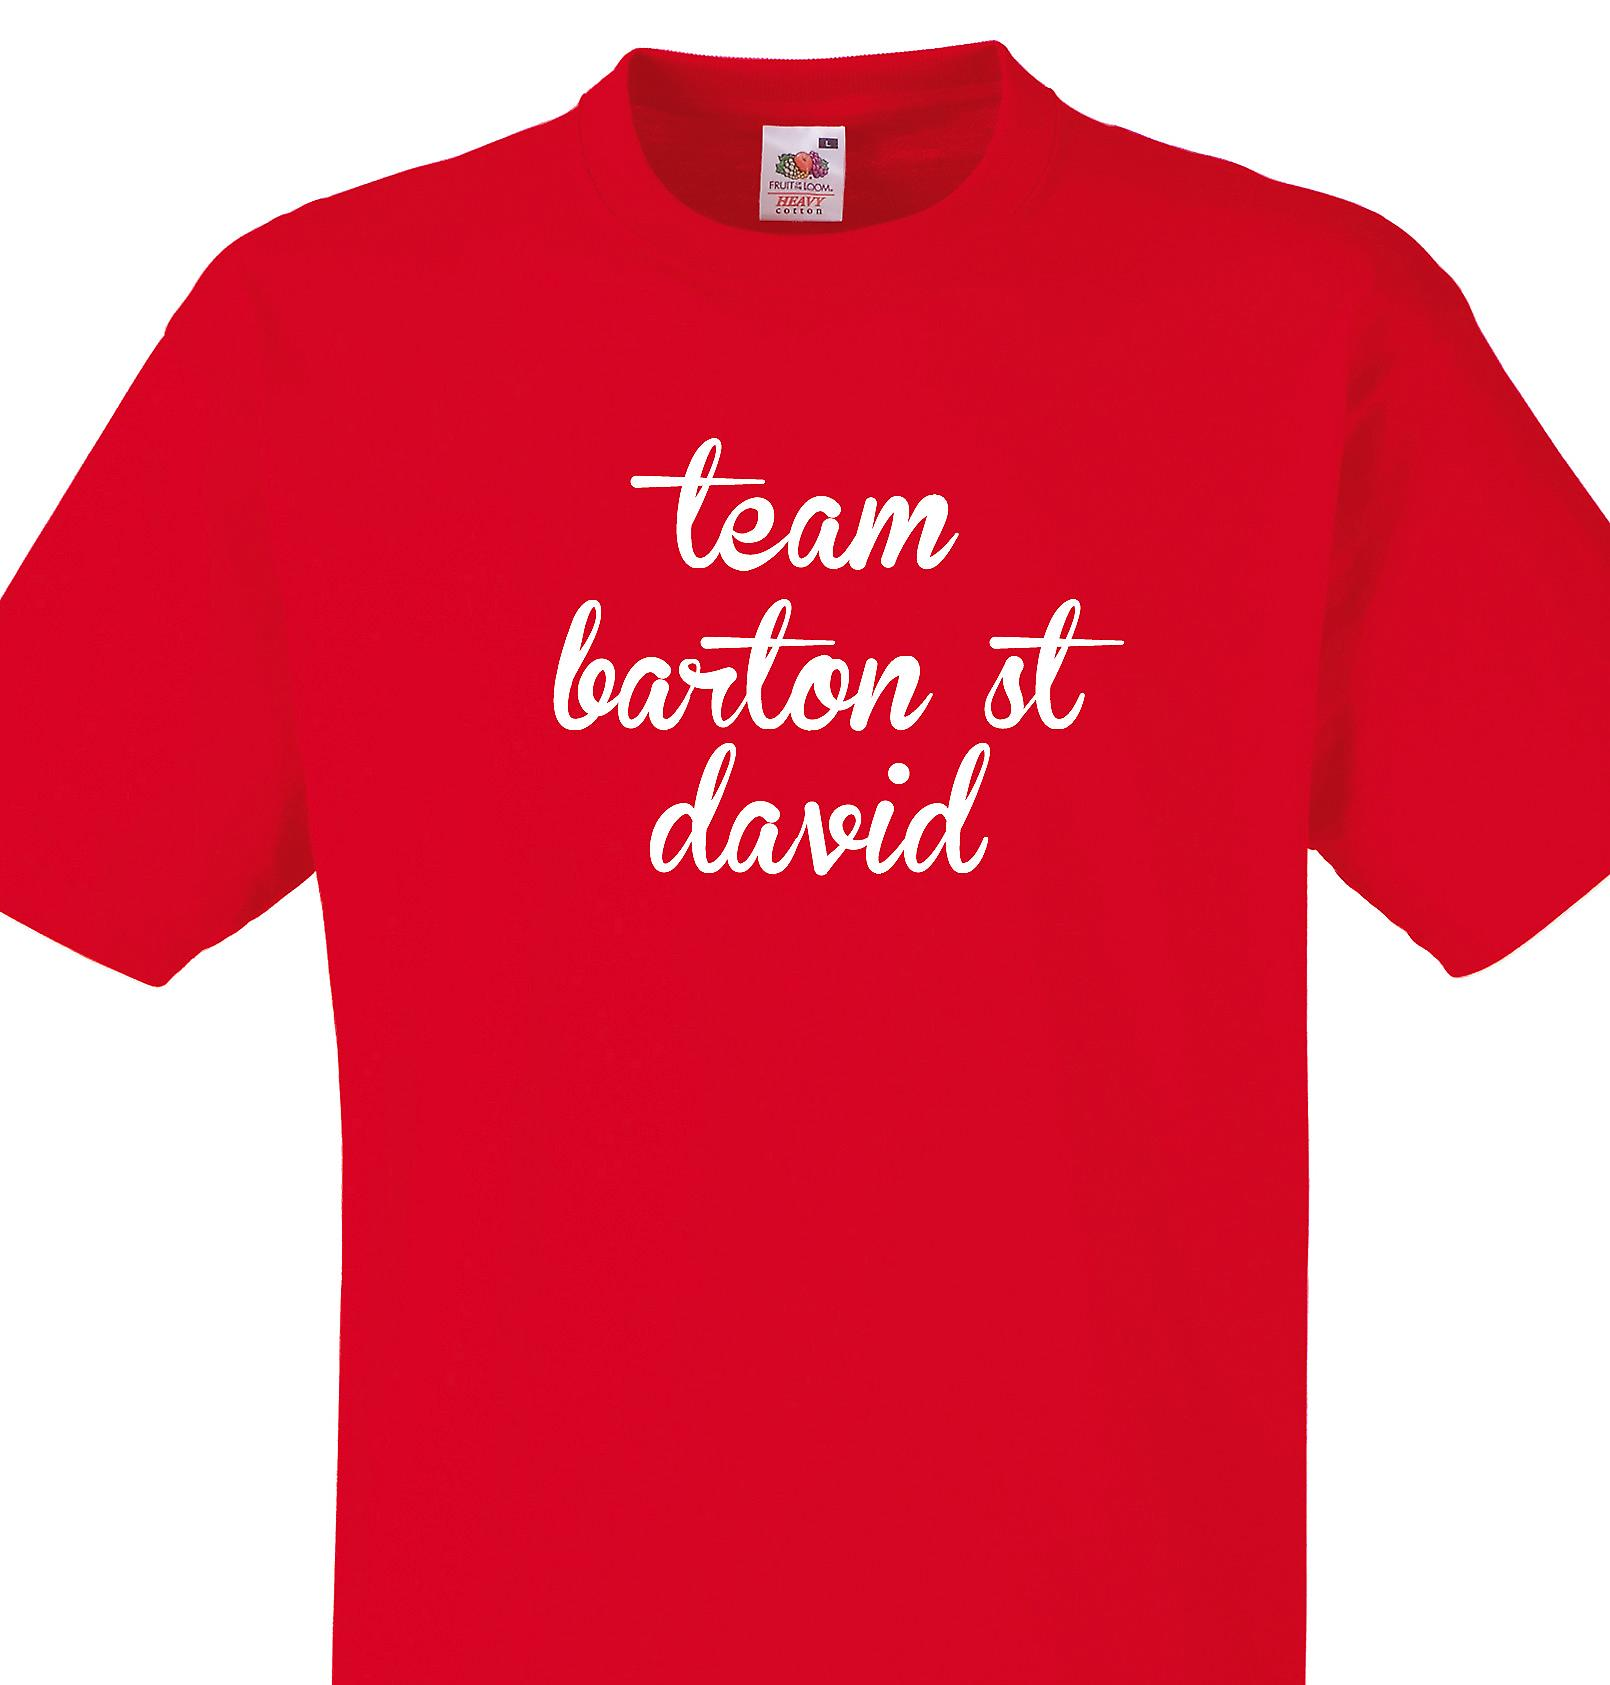 Team Barton st david Red T shirt